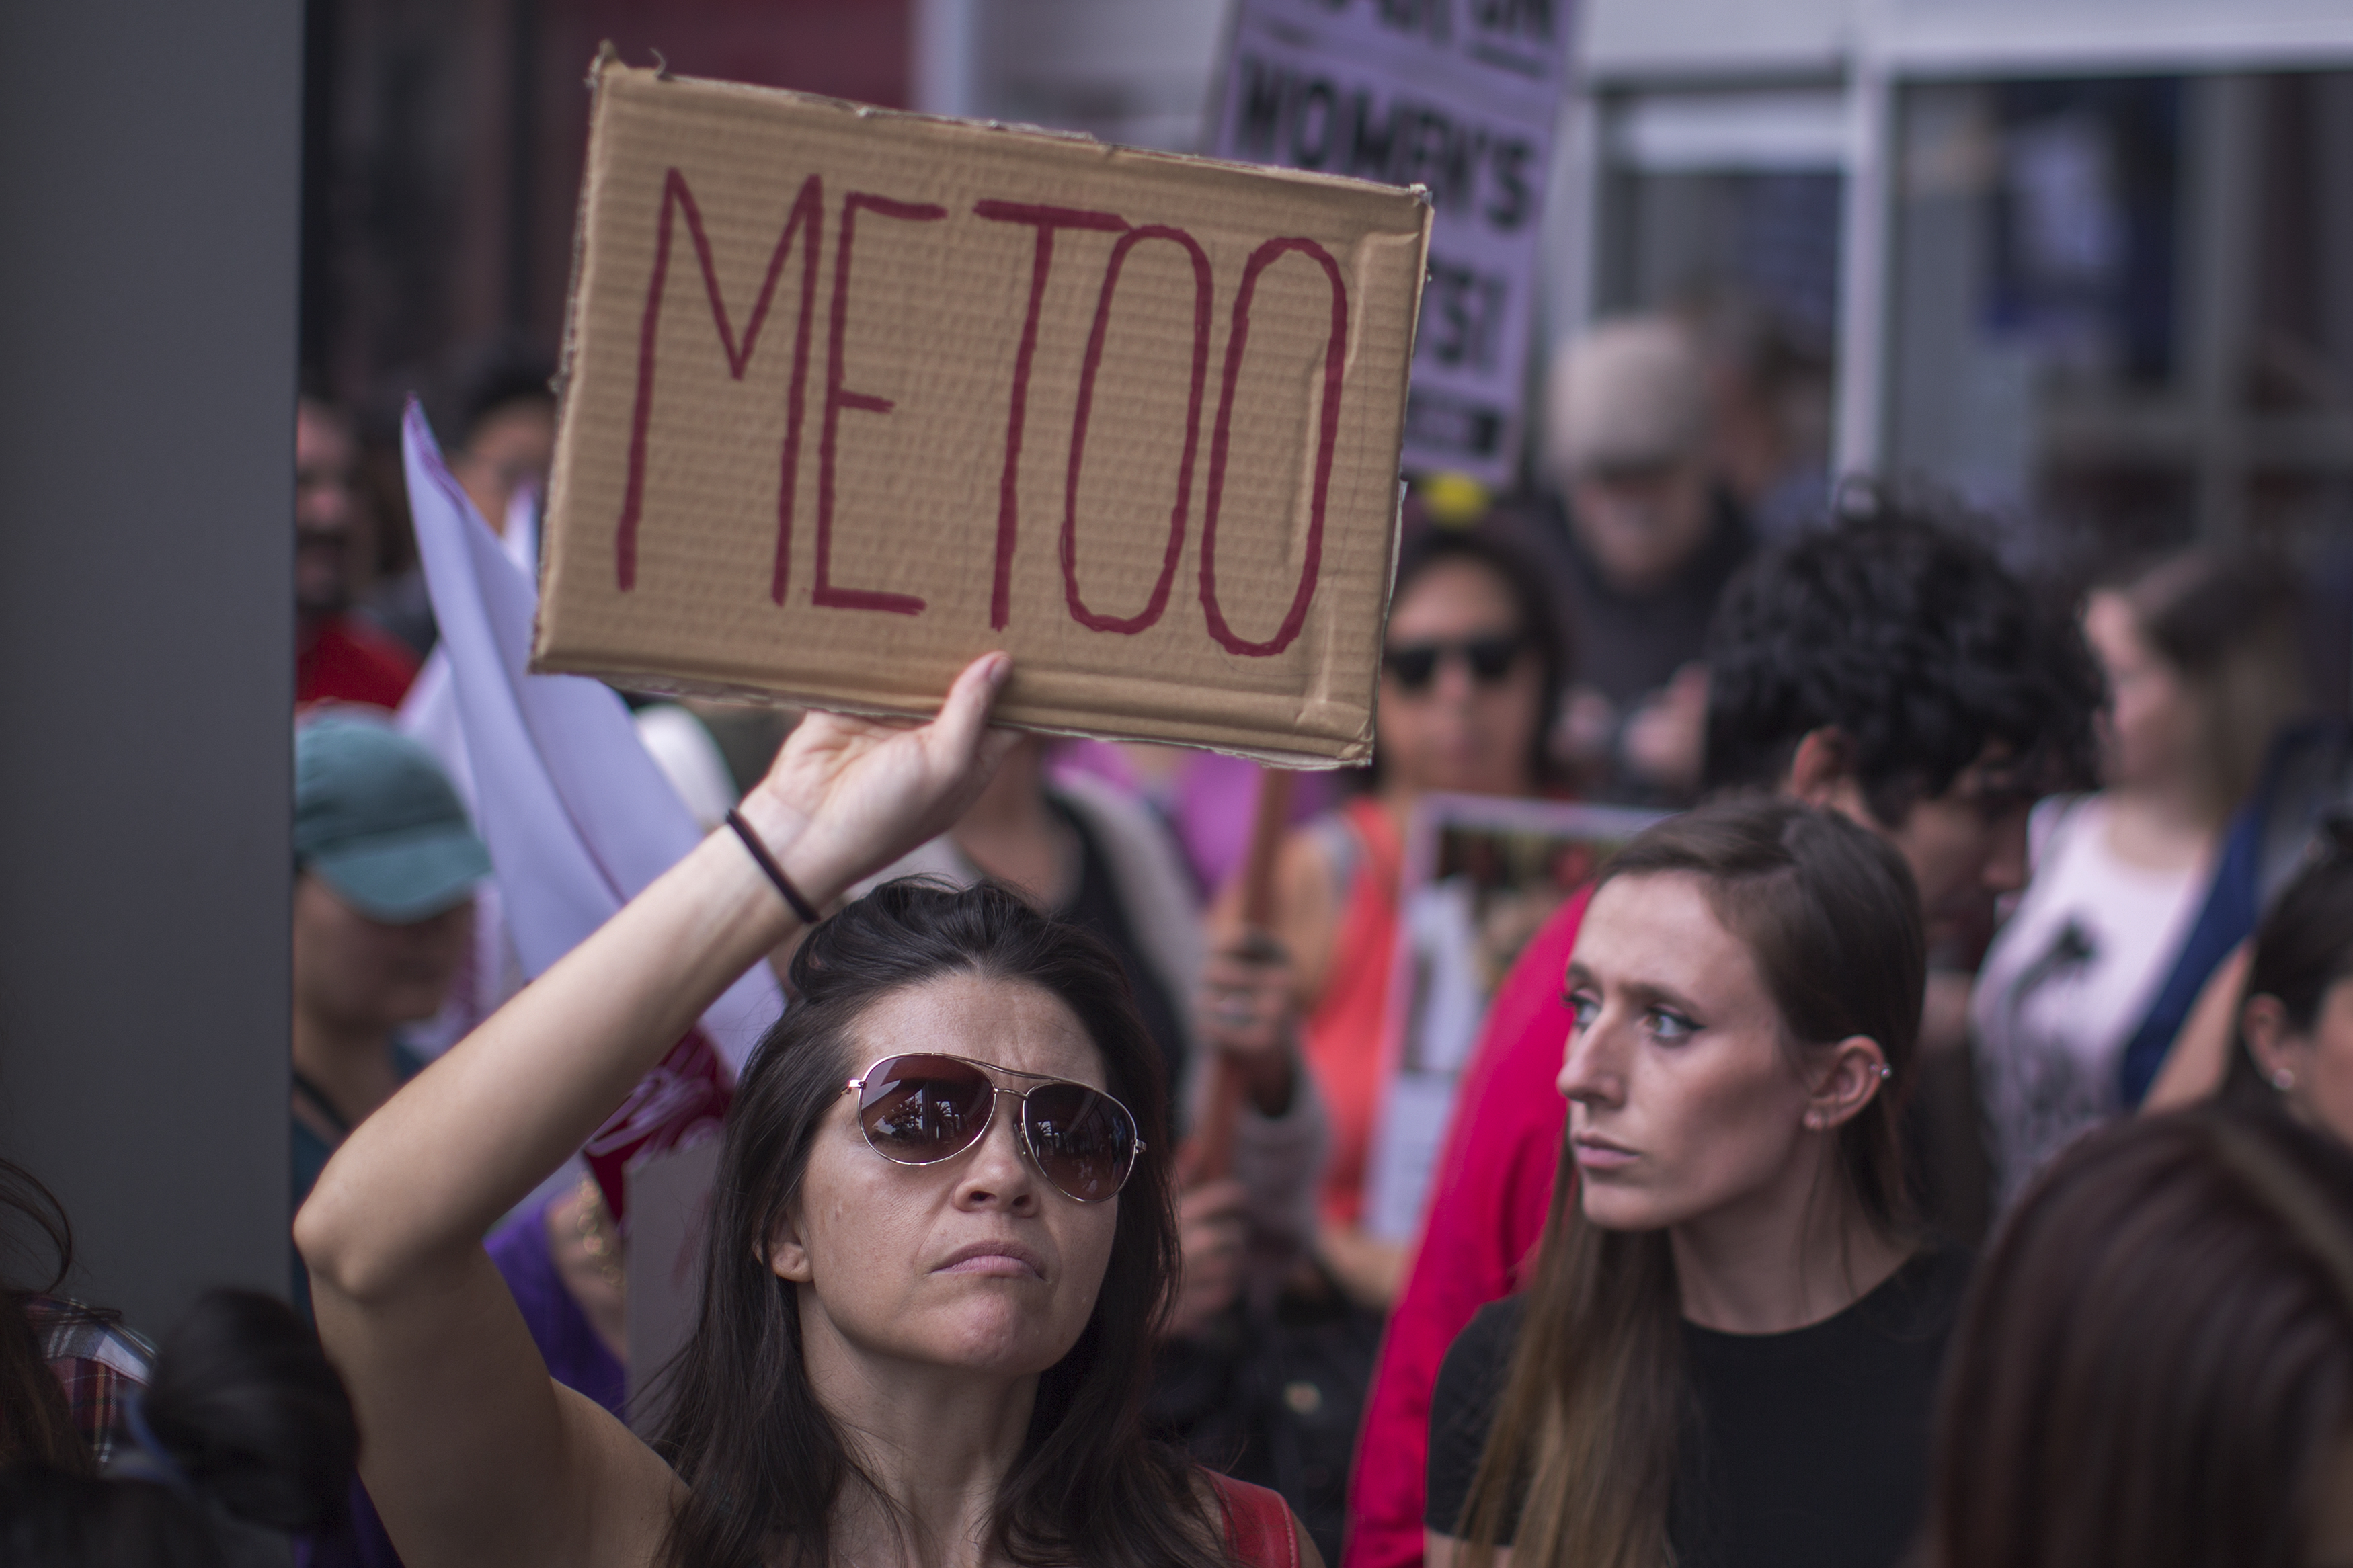 The women reporters who sparked the #MeToo movement are already being written out of the story